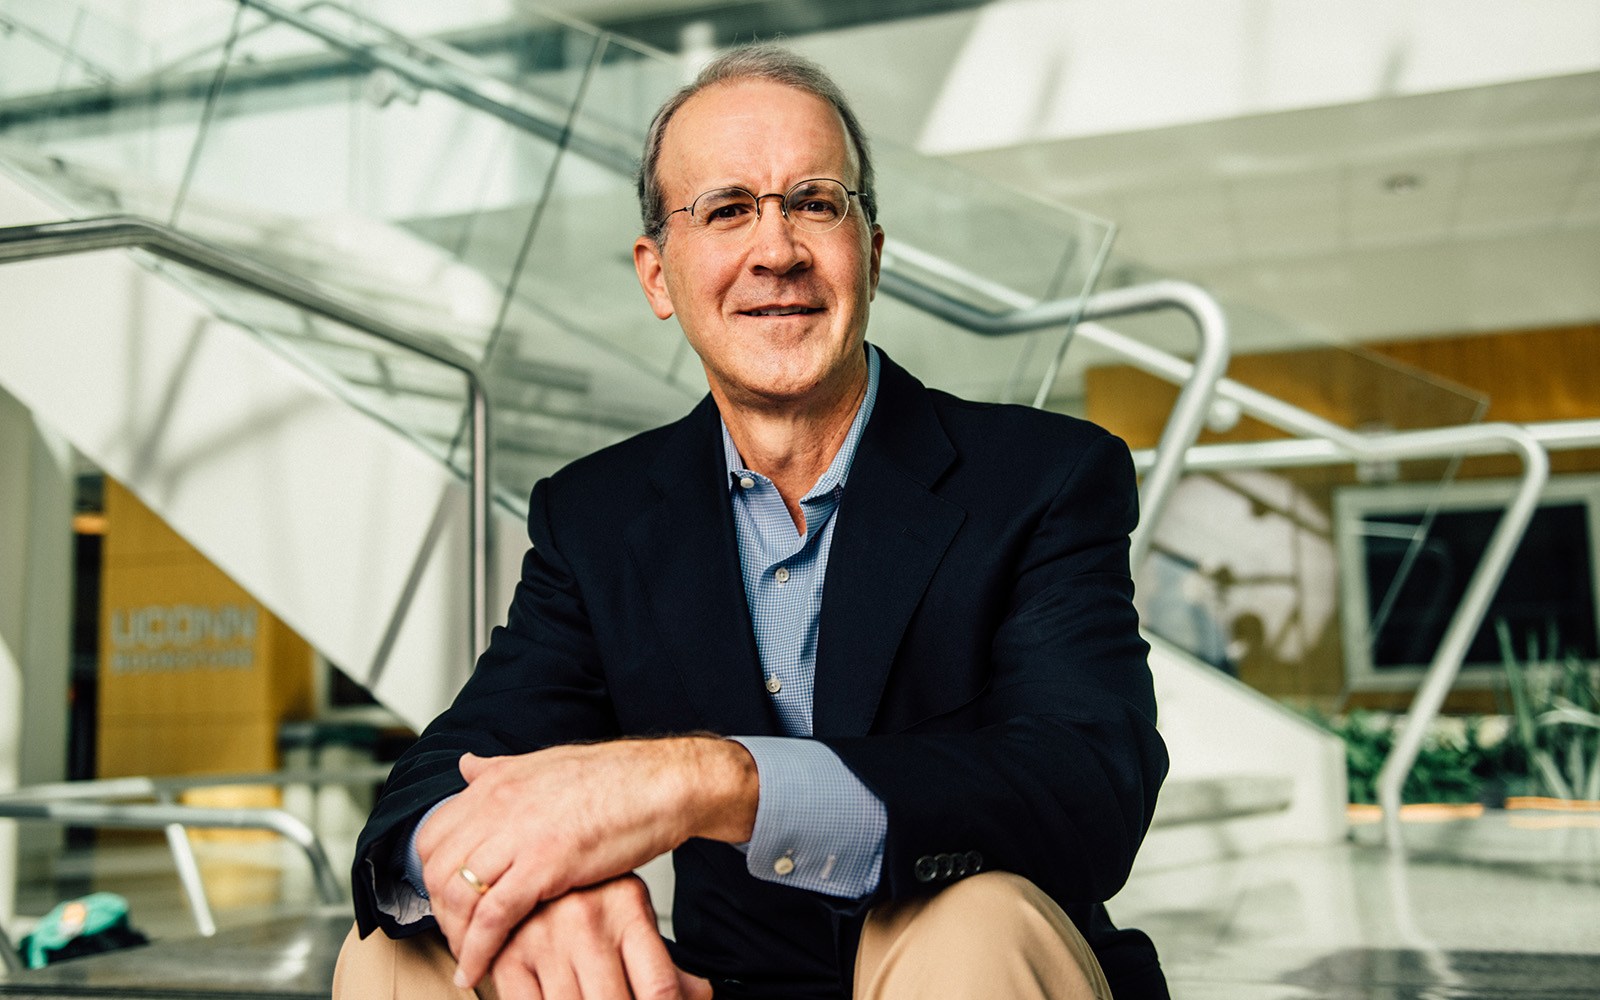 Blake Mather retired after 22 years at Goldman Sachs.  Now, he is an adjunct professor and advisor to the UConn Student Managed Fund in Stamford, giving students the opportunity to gain practical experience in investment strategies. (Nathan Oldham / UConn School of Business)